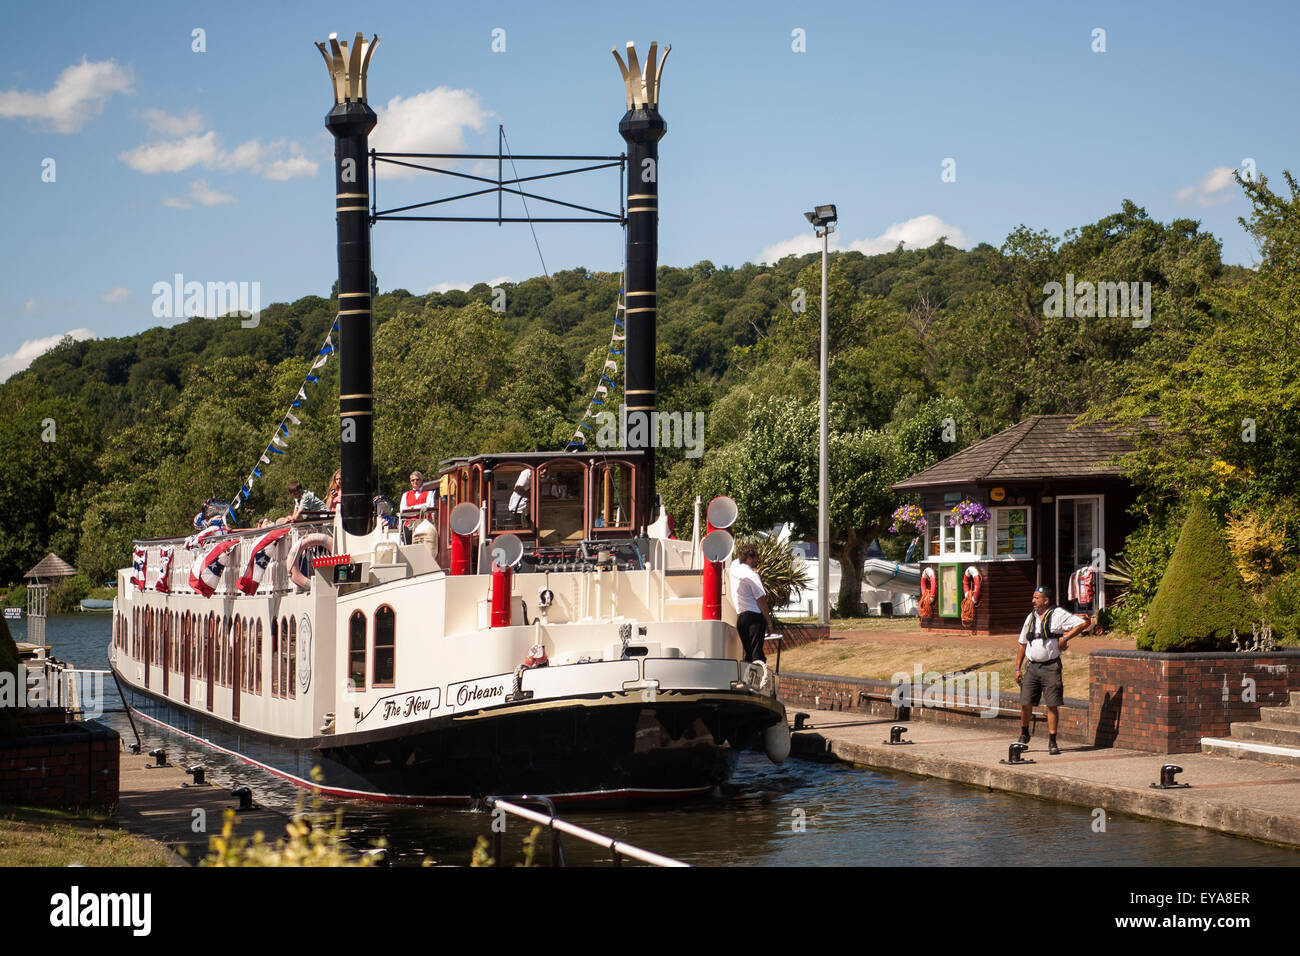 England, River Thames, New Orleans paddle steamer in Hambleden lock - Stock Image